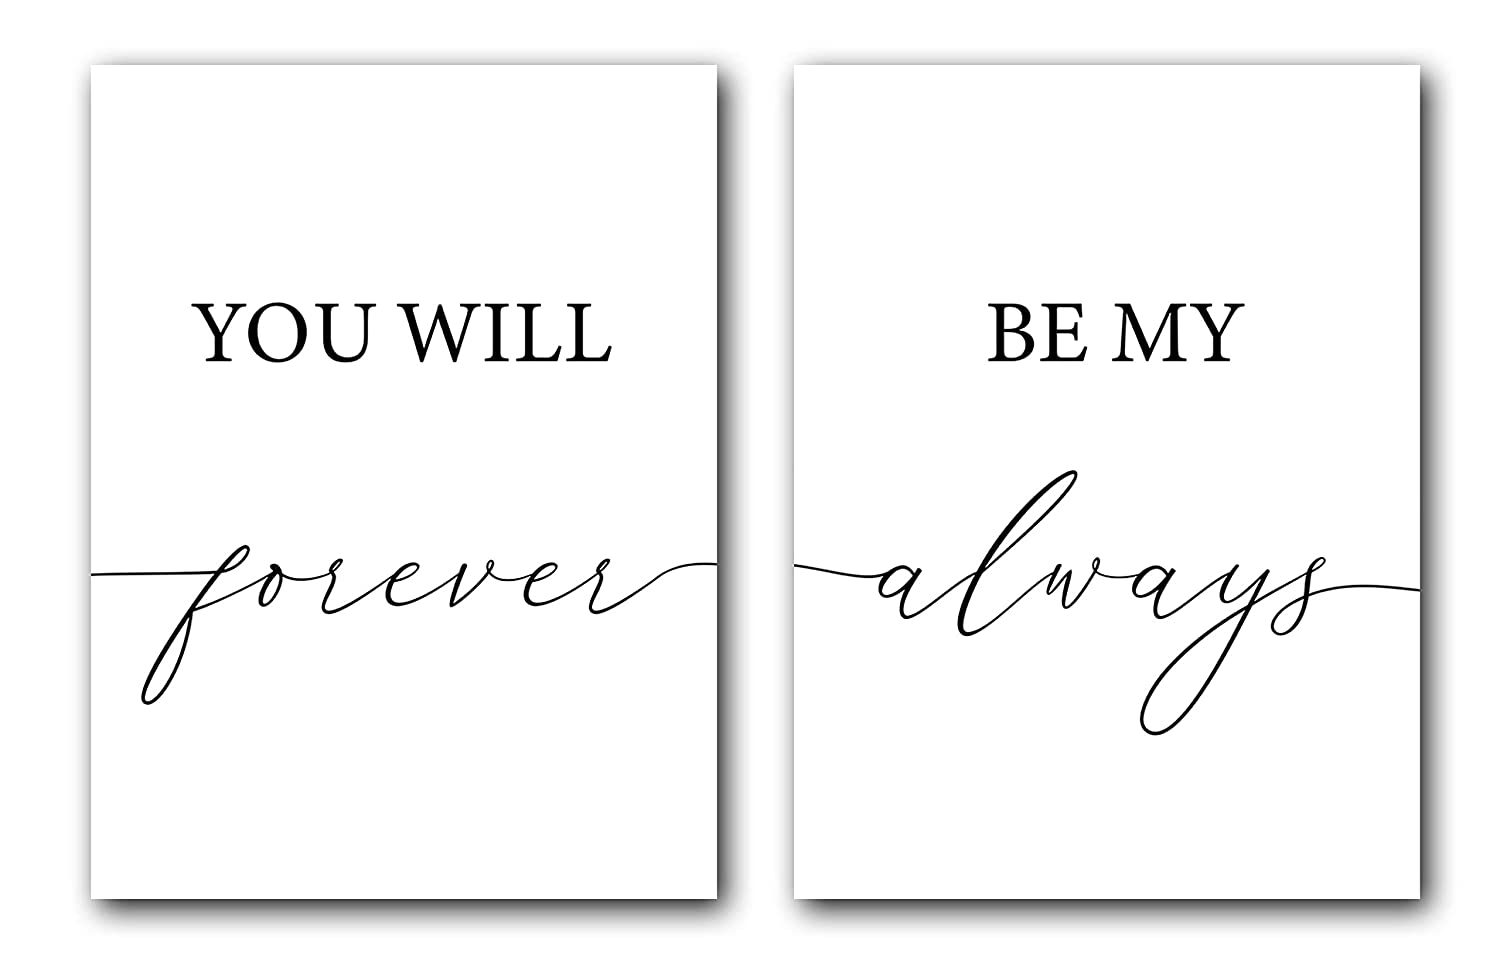 You Will Forever Be My Always, Unframed, 18 x 24 Inches, Set of 2, Posters, Minimalist Art Typography Art, Bedroom Wall Art, Romantic Wall Decor